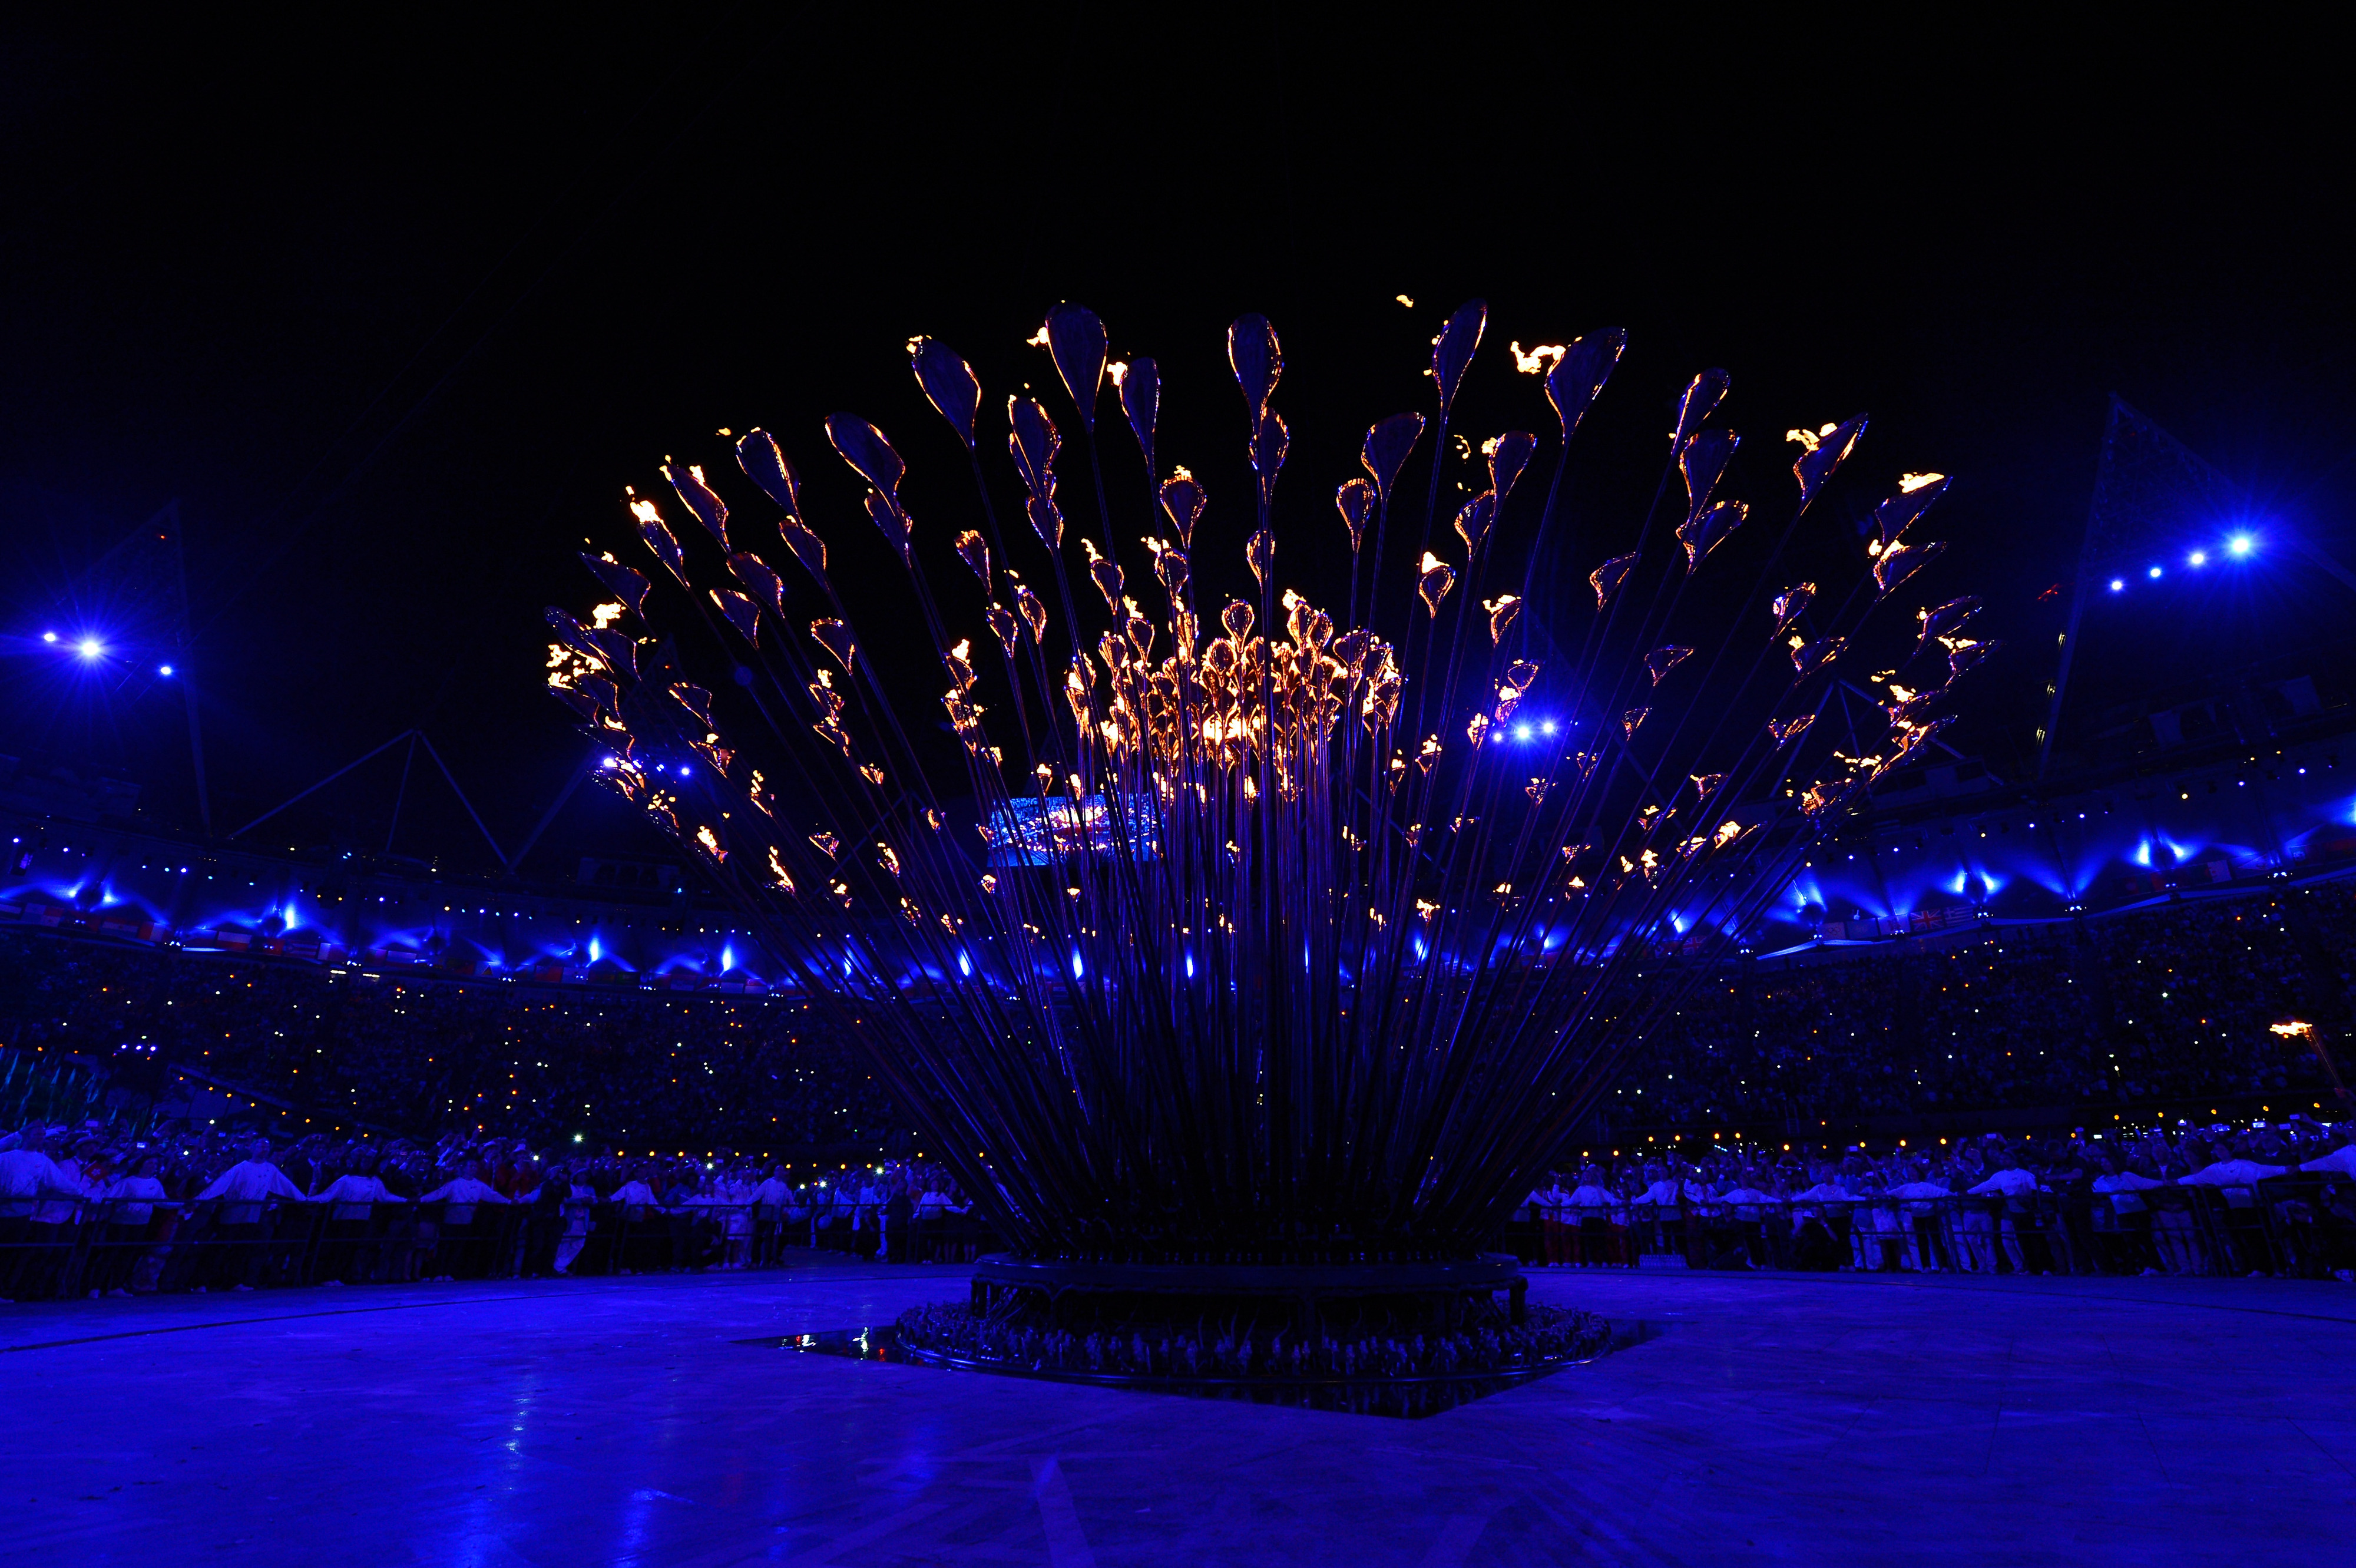 LONDON, ENGLAND - JULY 27:  The Olympic Cauldron is lit during the Opening Ceremony of the London 2012 Olympic Games at the Olympic Stadium on July 27, 2012 in London, England.  (Photo by Pool/Getty Images)